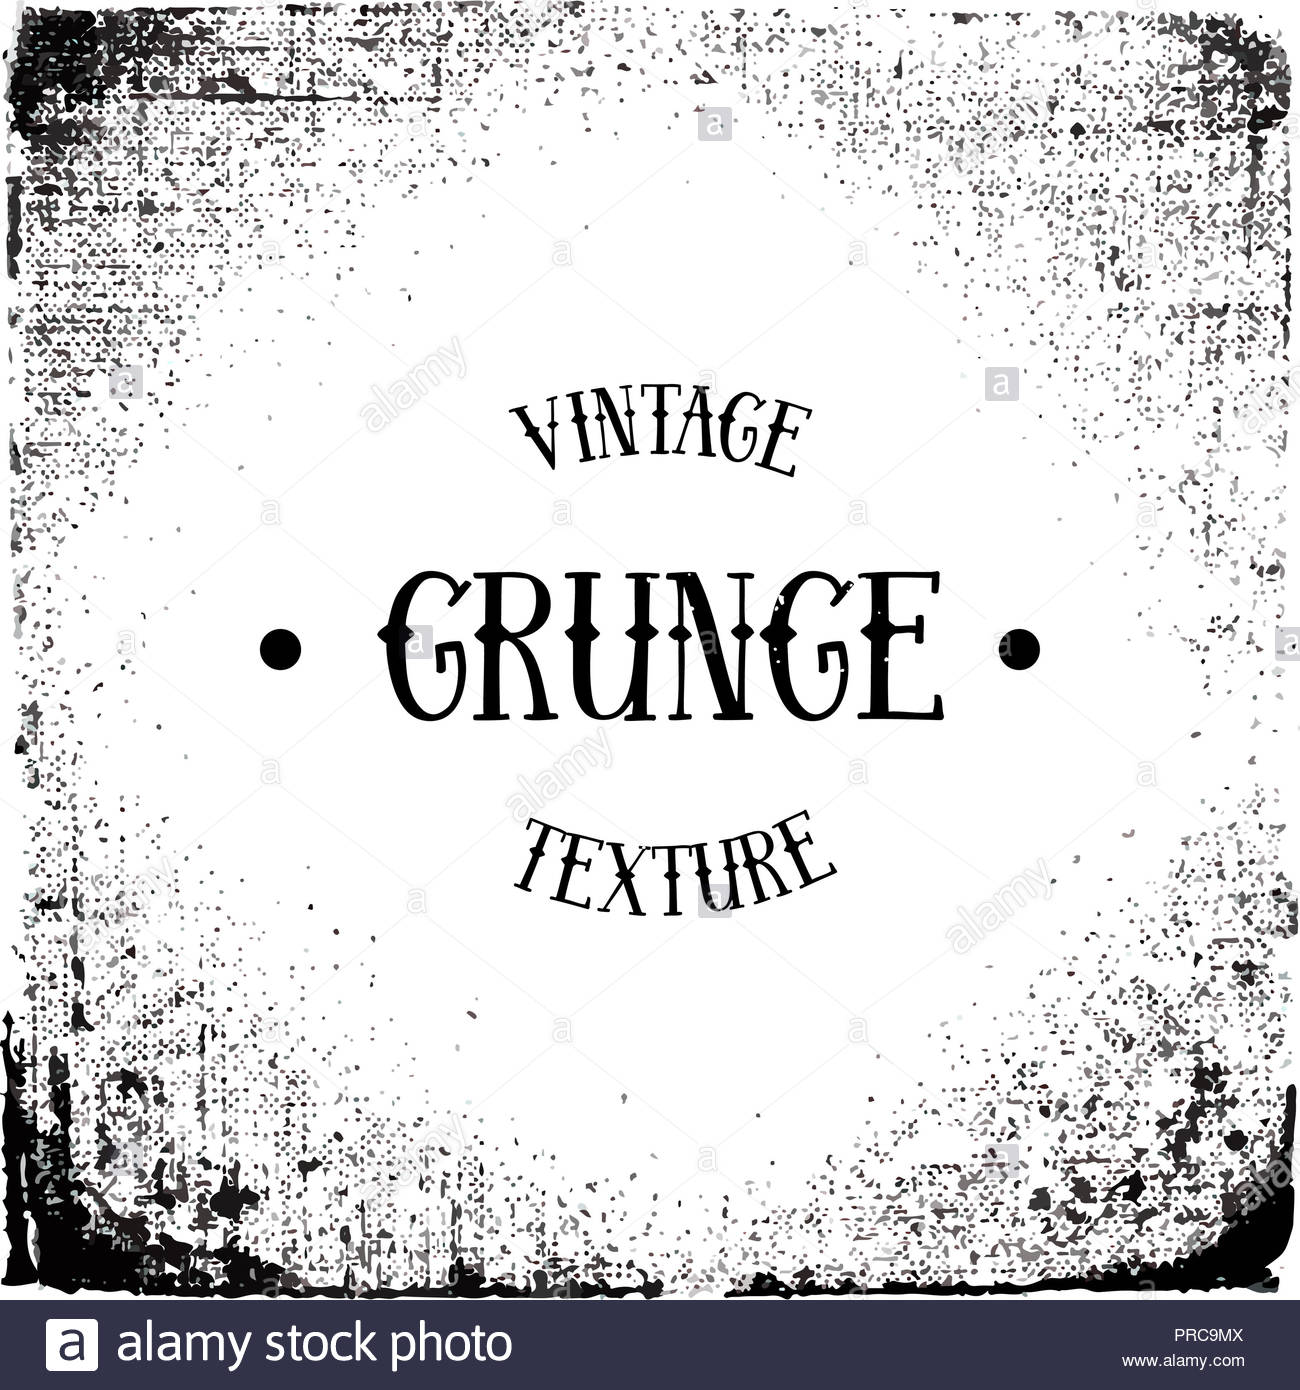 Grunge retro urban texture. Abstract vintage distressed background. Overlay texture for any urban, vintage, retro design posters, banners. - Stock Image